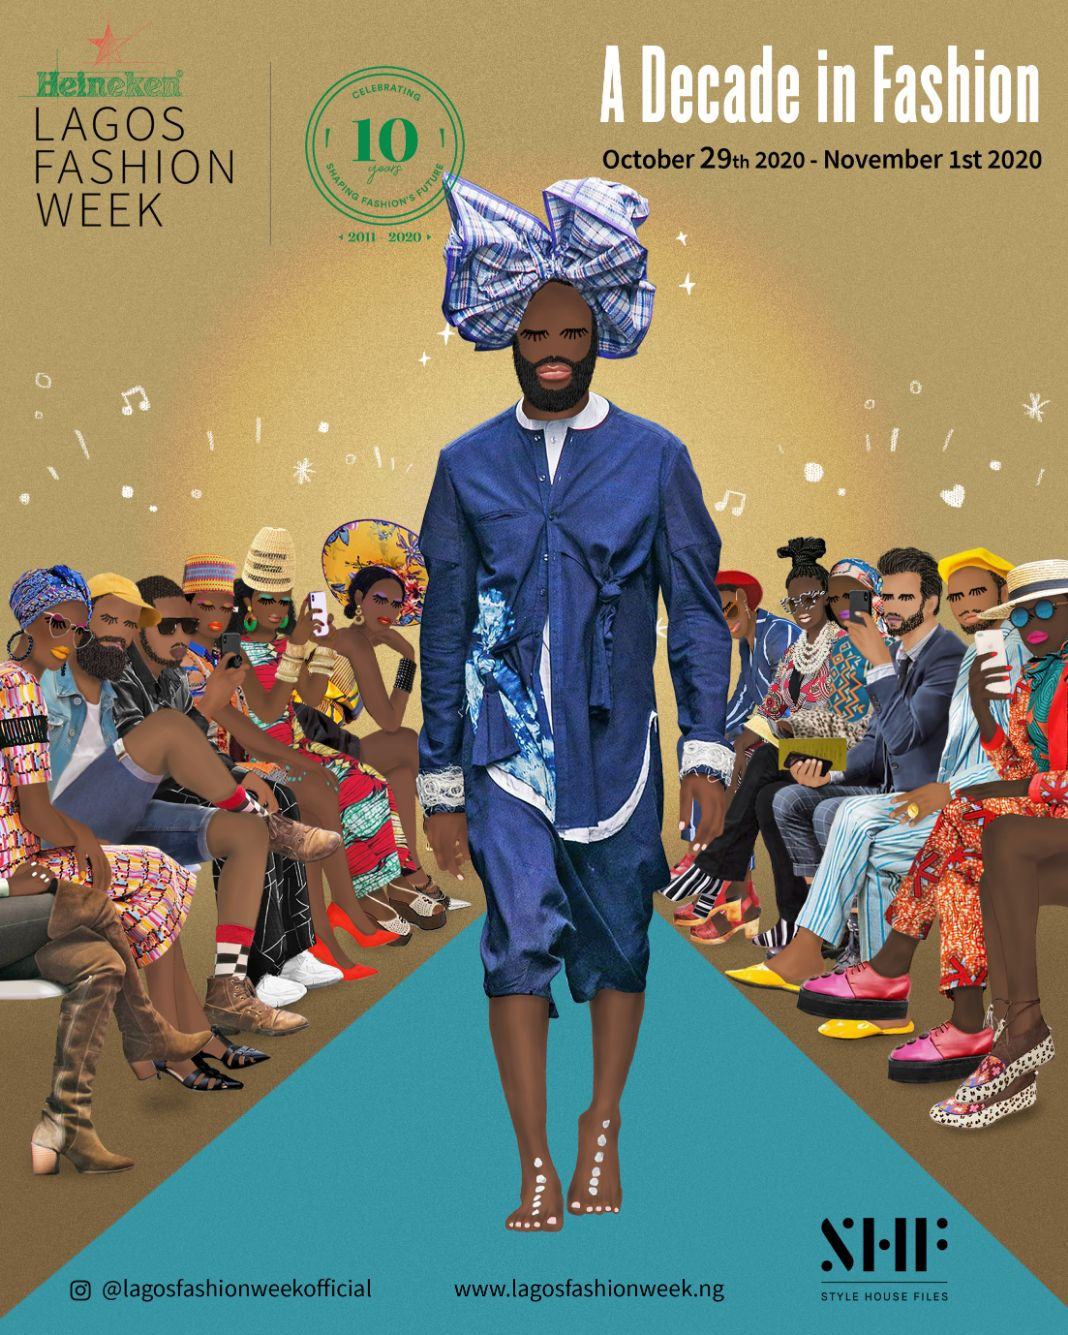 nkwo-a-decade-in-fashion-heineken-lagos-fashion-week